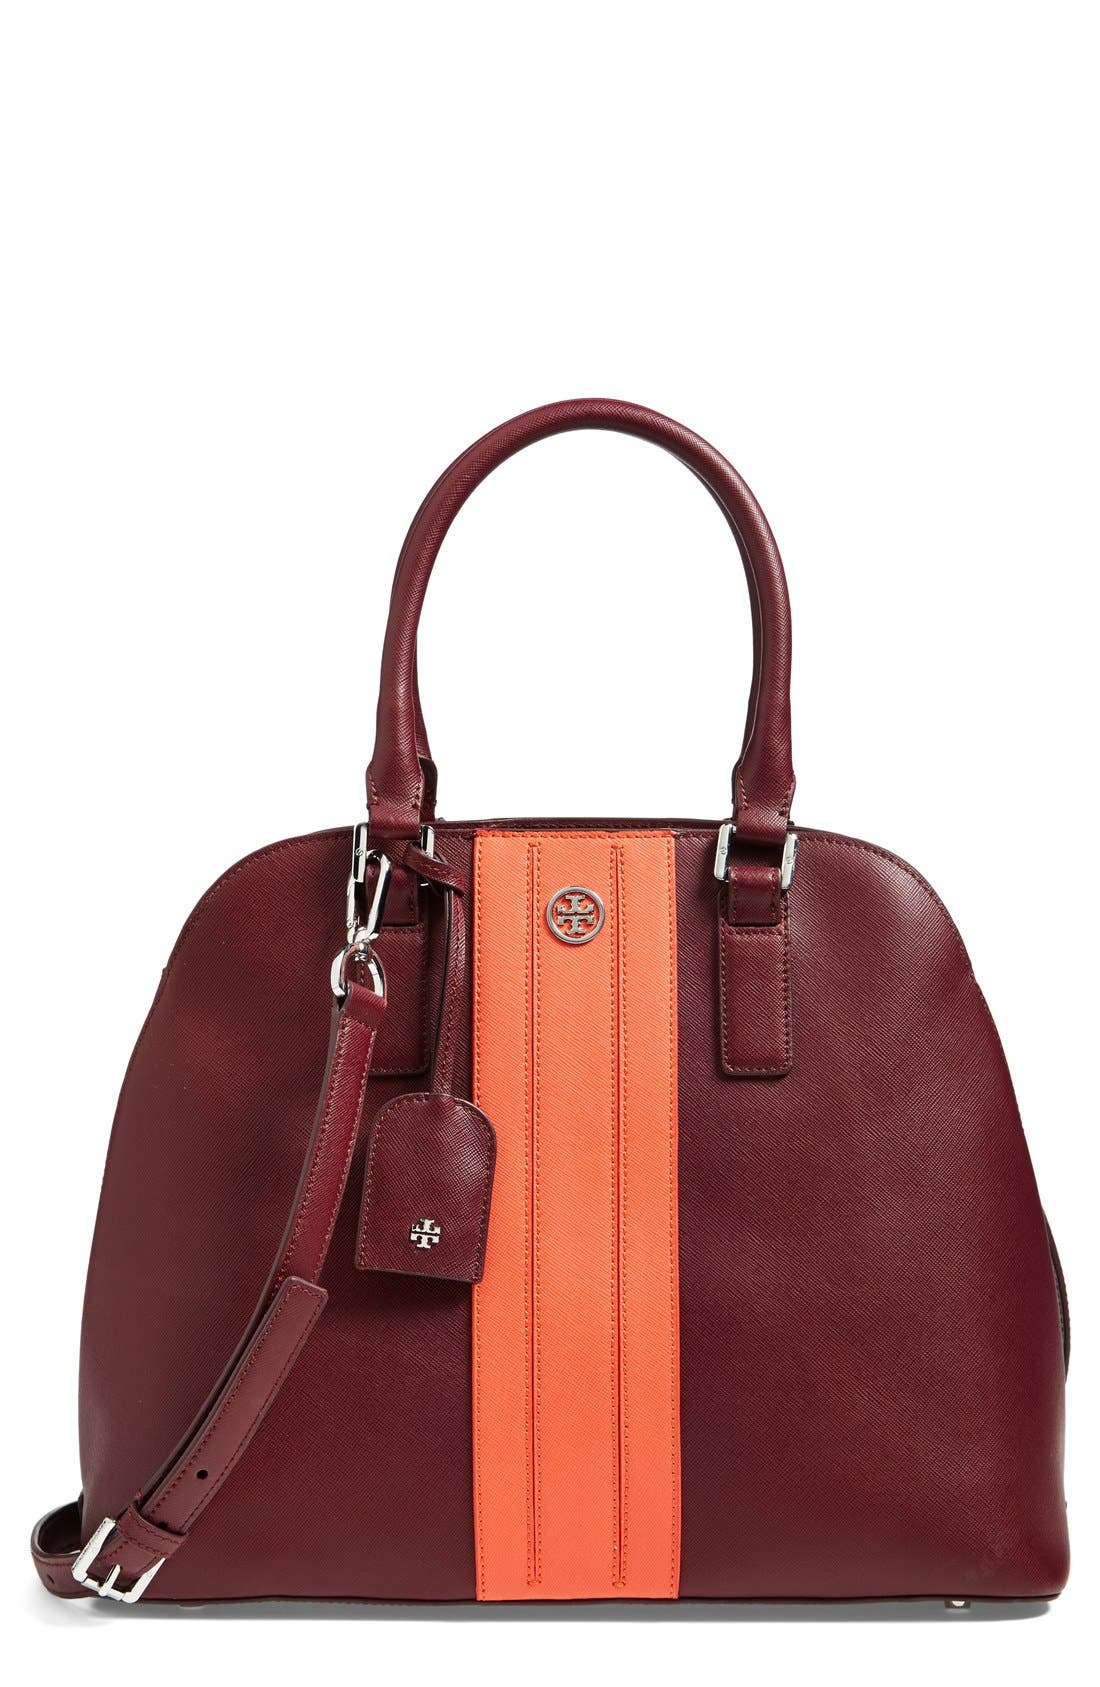 Alternate Image 1 Selected - Tory Burch Colorblock Leather Dome Satchel